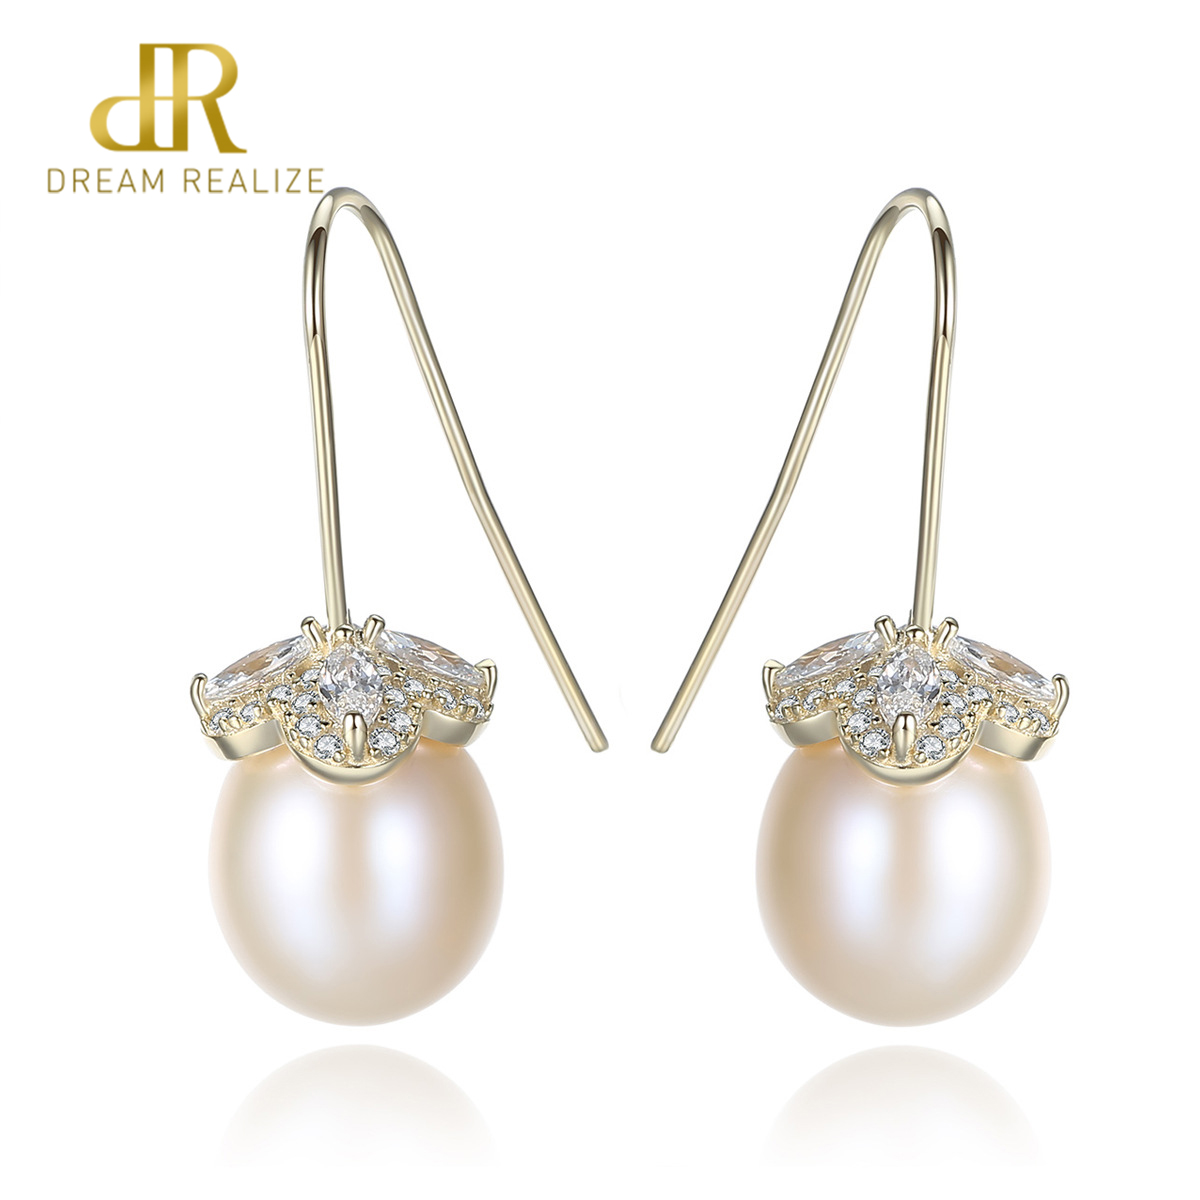 DR Elegant Romantic Natural Pearl Earrings Fine jewelry pearl pendant drop earrings Women chic clothing accessory